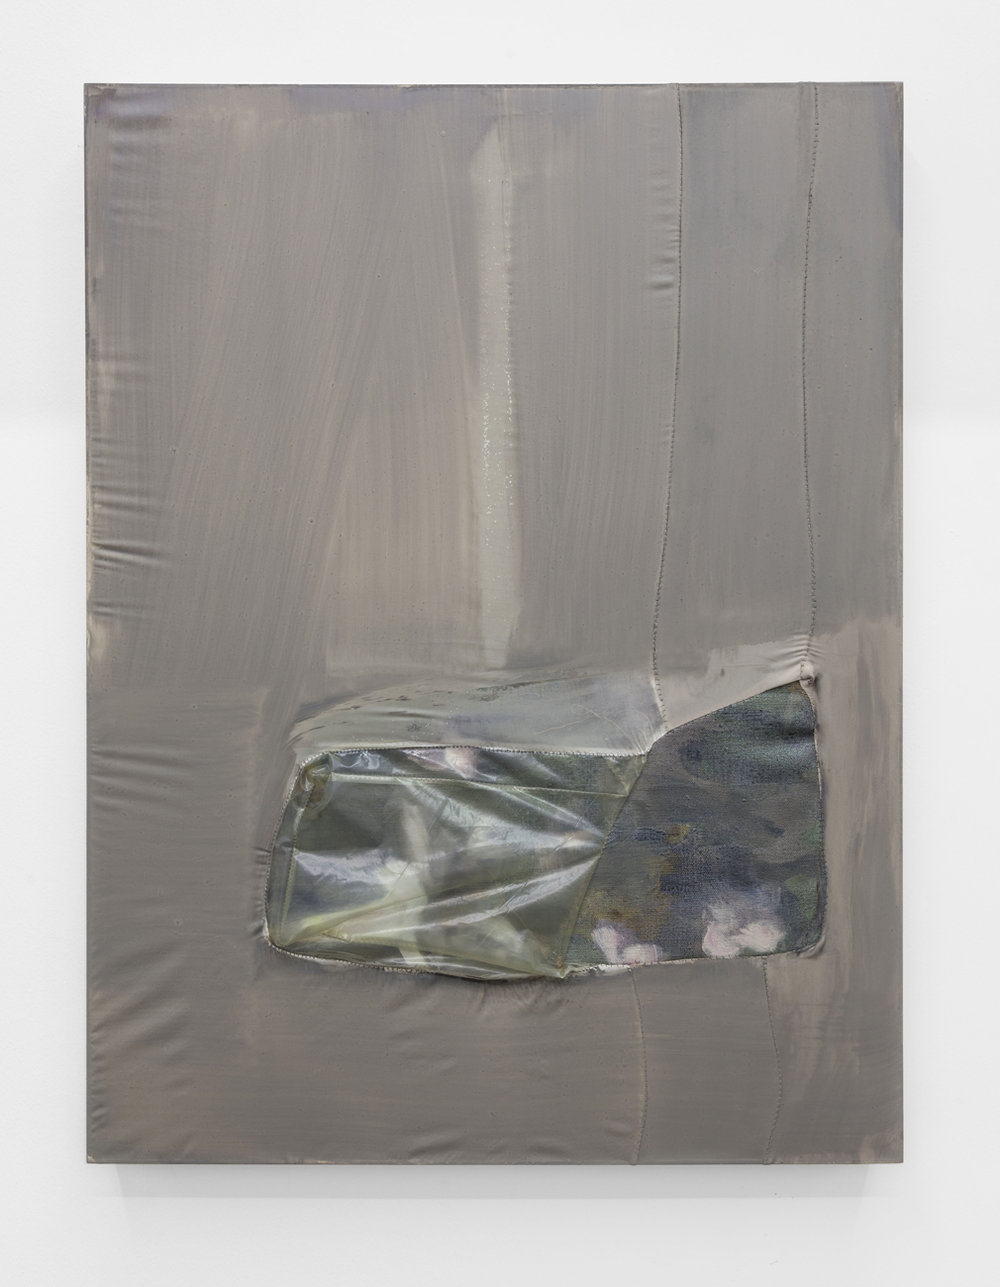 Erica Mahinay   Thin Skin #41: Flora , 2014  Oil on linen and treated fabric, plastic, glitter  32 x 24 inches